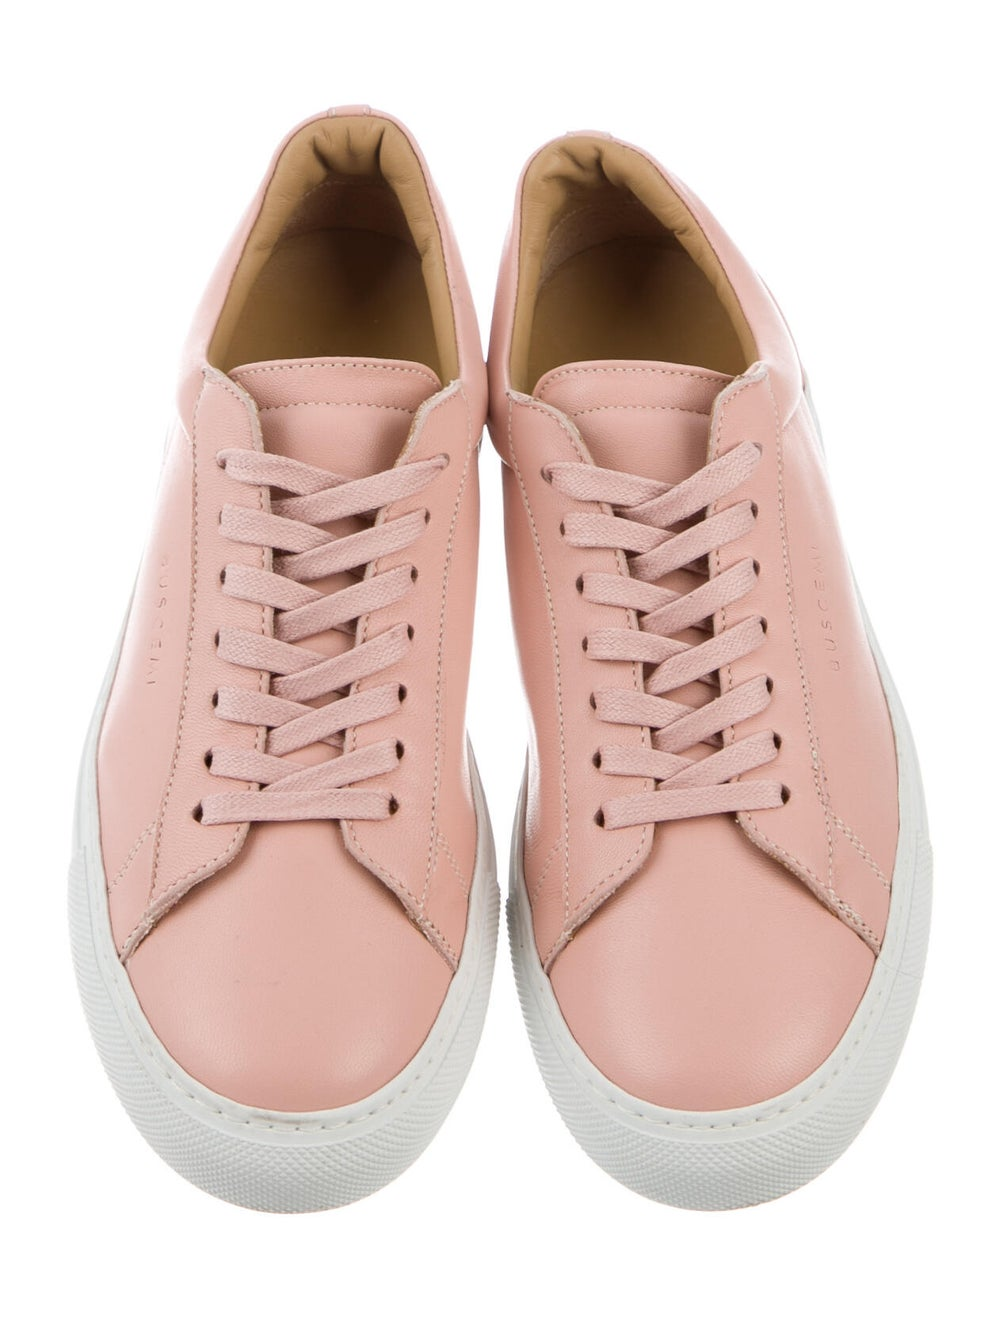 Buscemi Leather Sneakers Pink - image 3